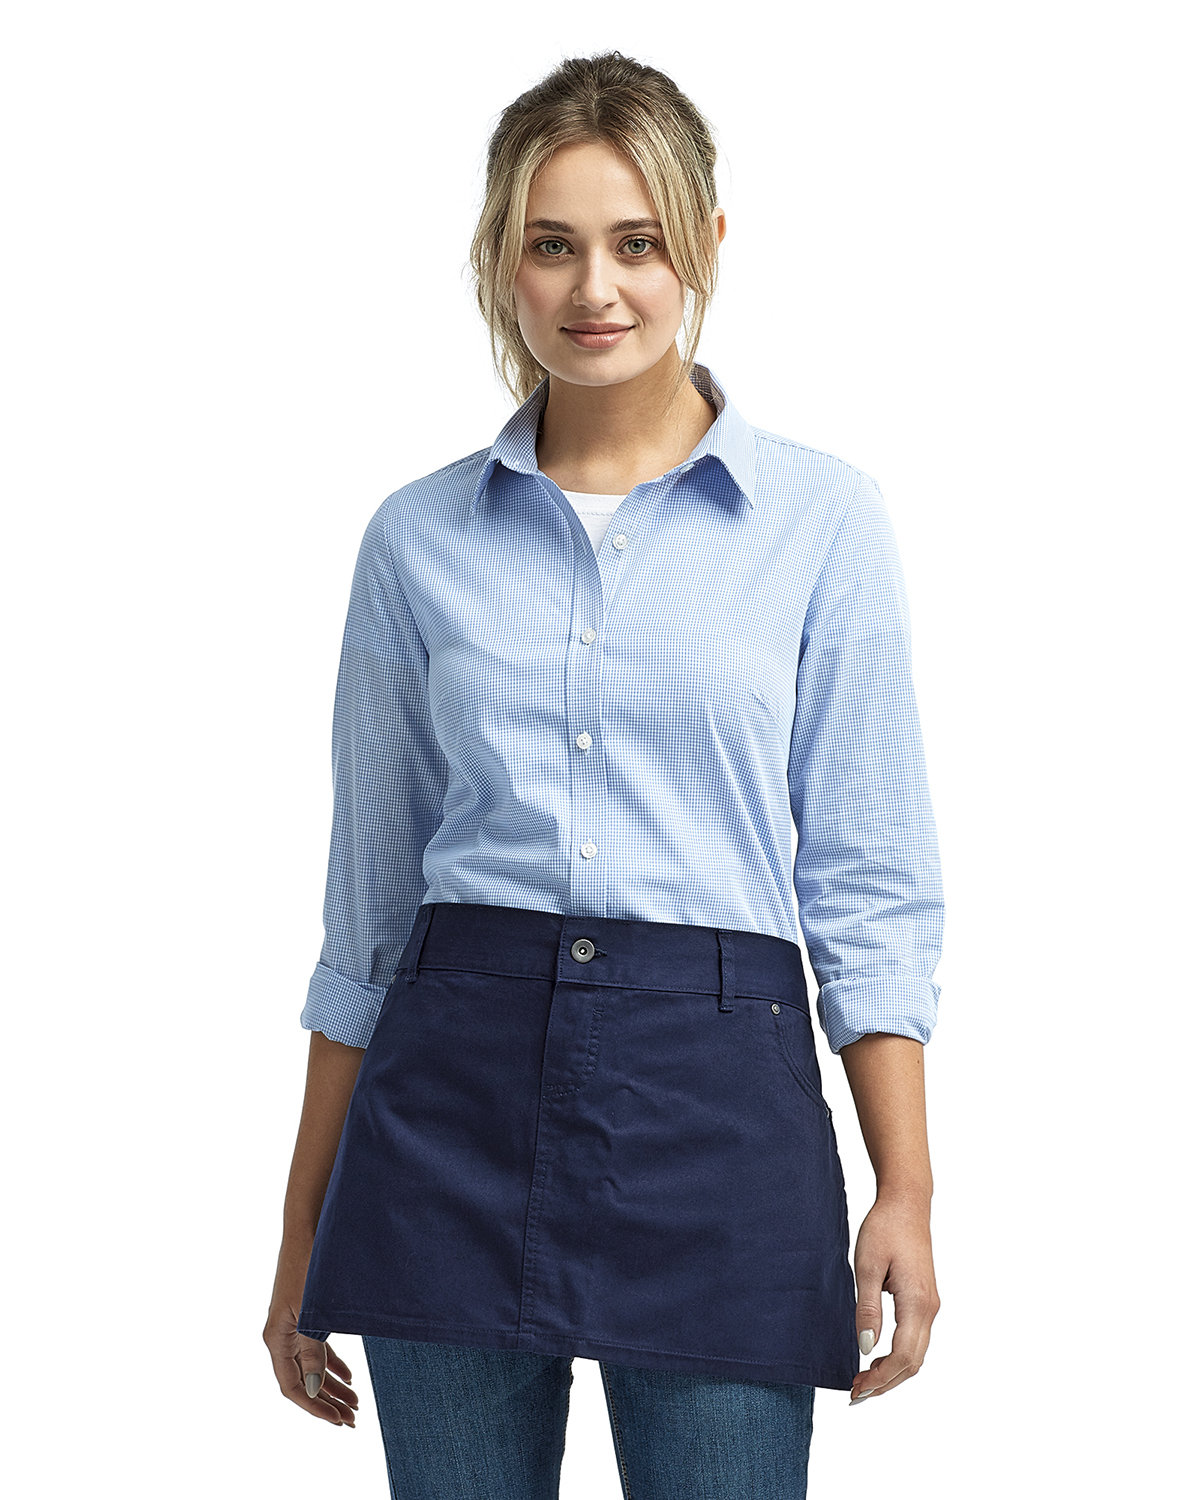 Artisan Collection by Reprime Unisex Cotton Chino Waist Apron NAVY